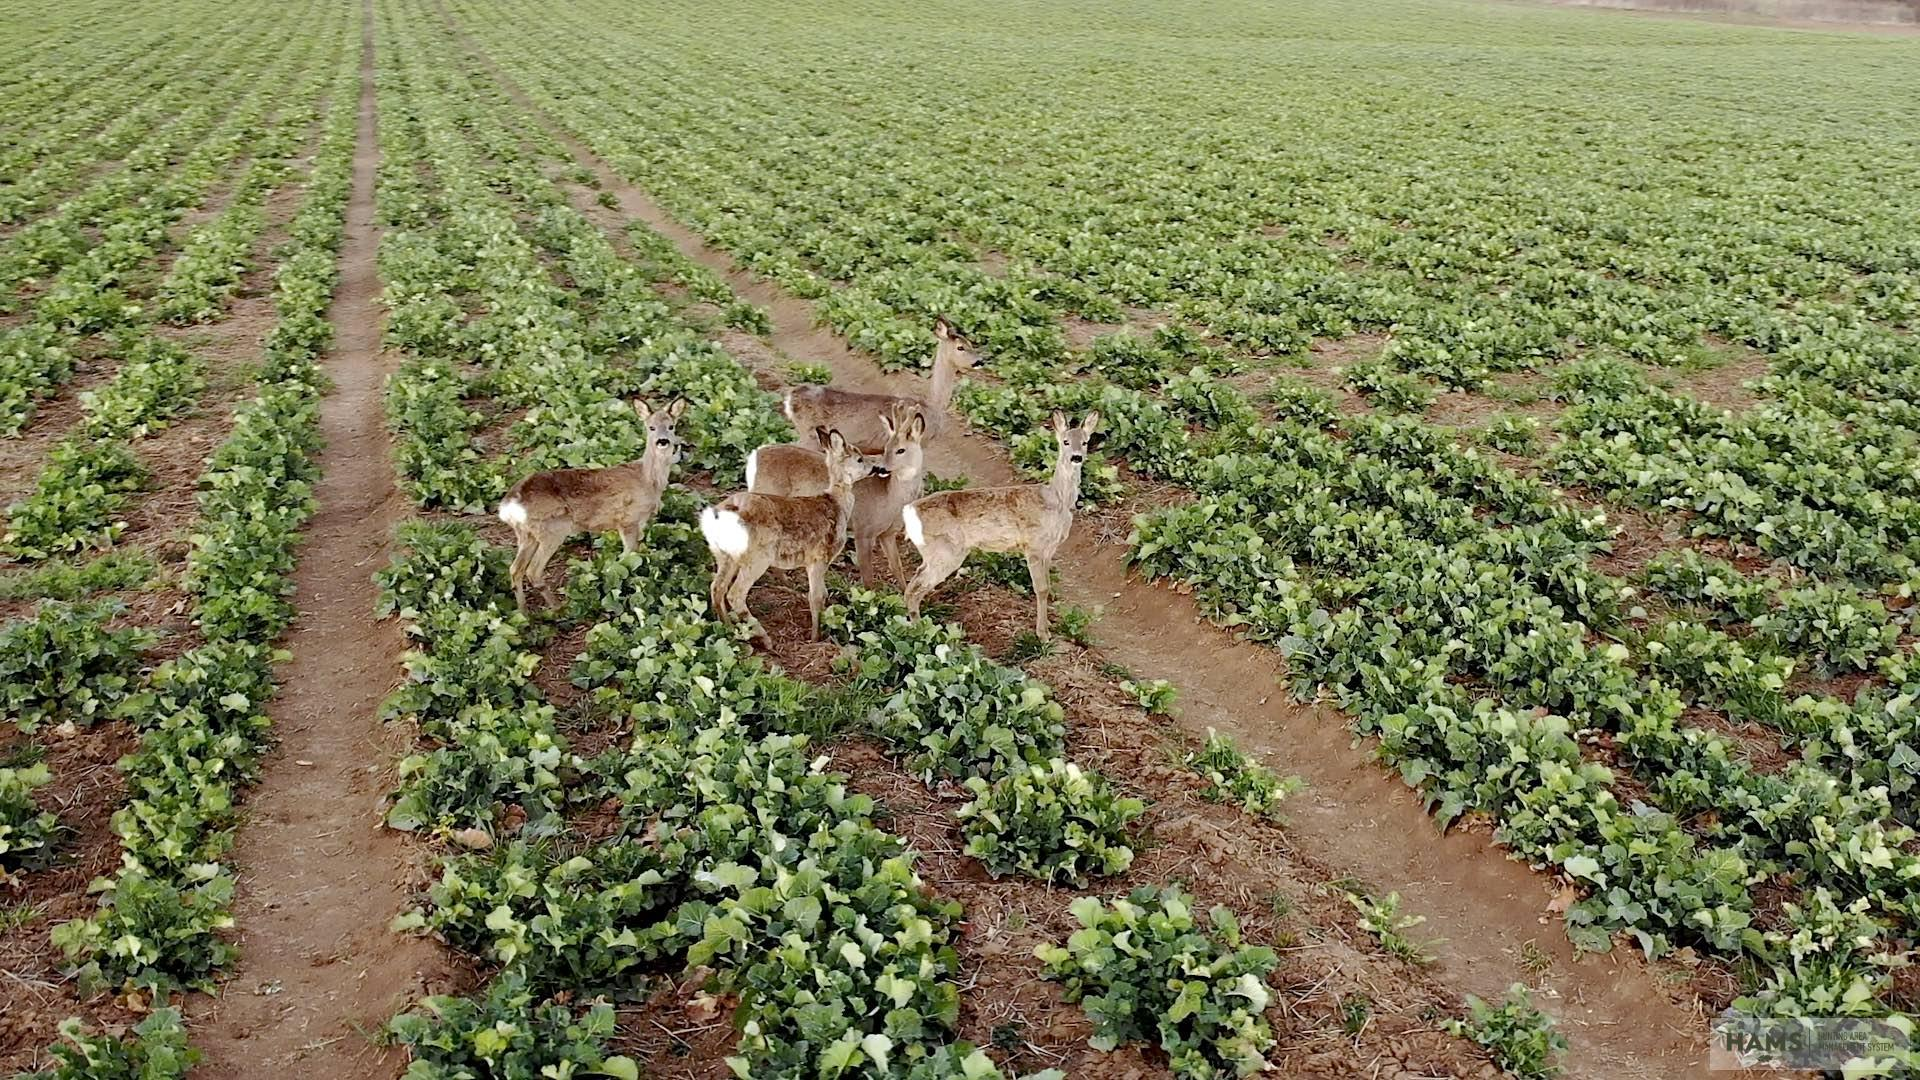 The search for answers: the mysteries of a roe deer population (Part 1.)